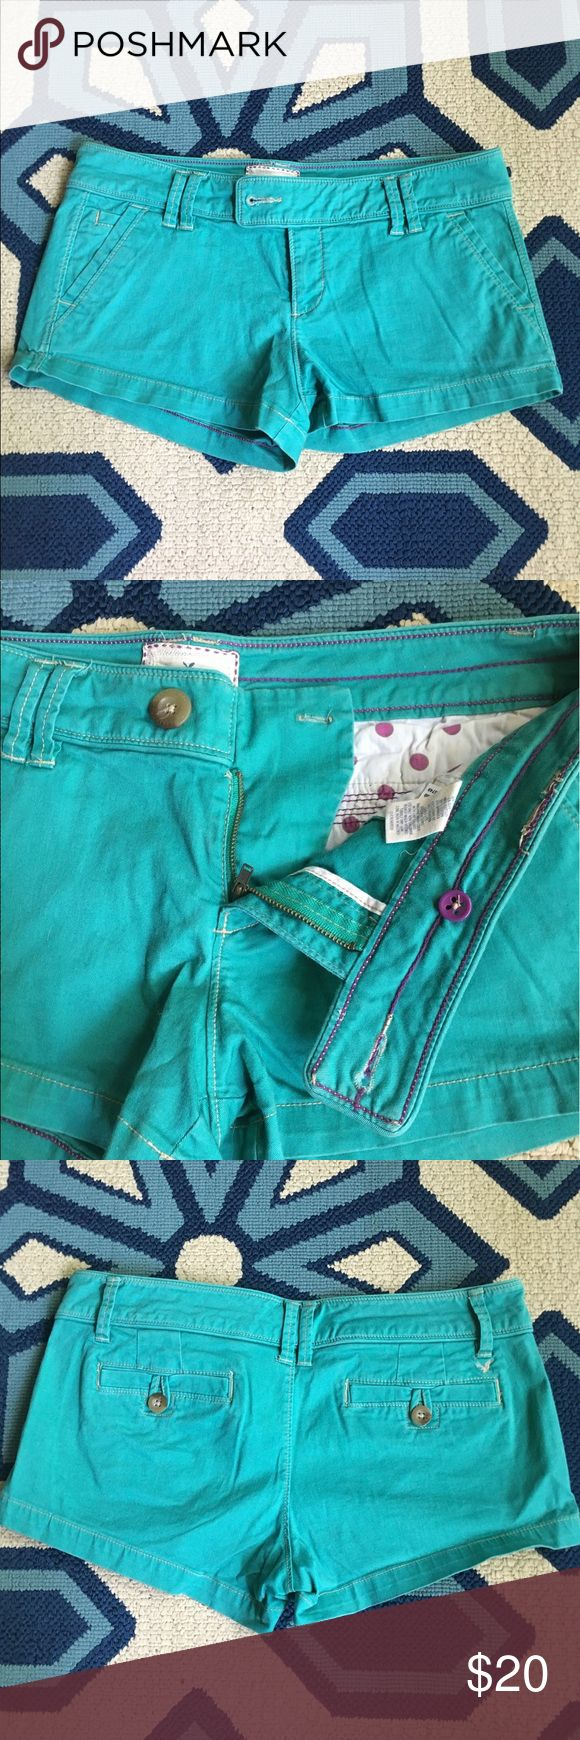 AMERICAN EAGLE 💕 teal shorts Adorable American Eagle shorts. Size 8. Great condition! 😘 American Eagle Outfitters Shorts